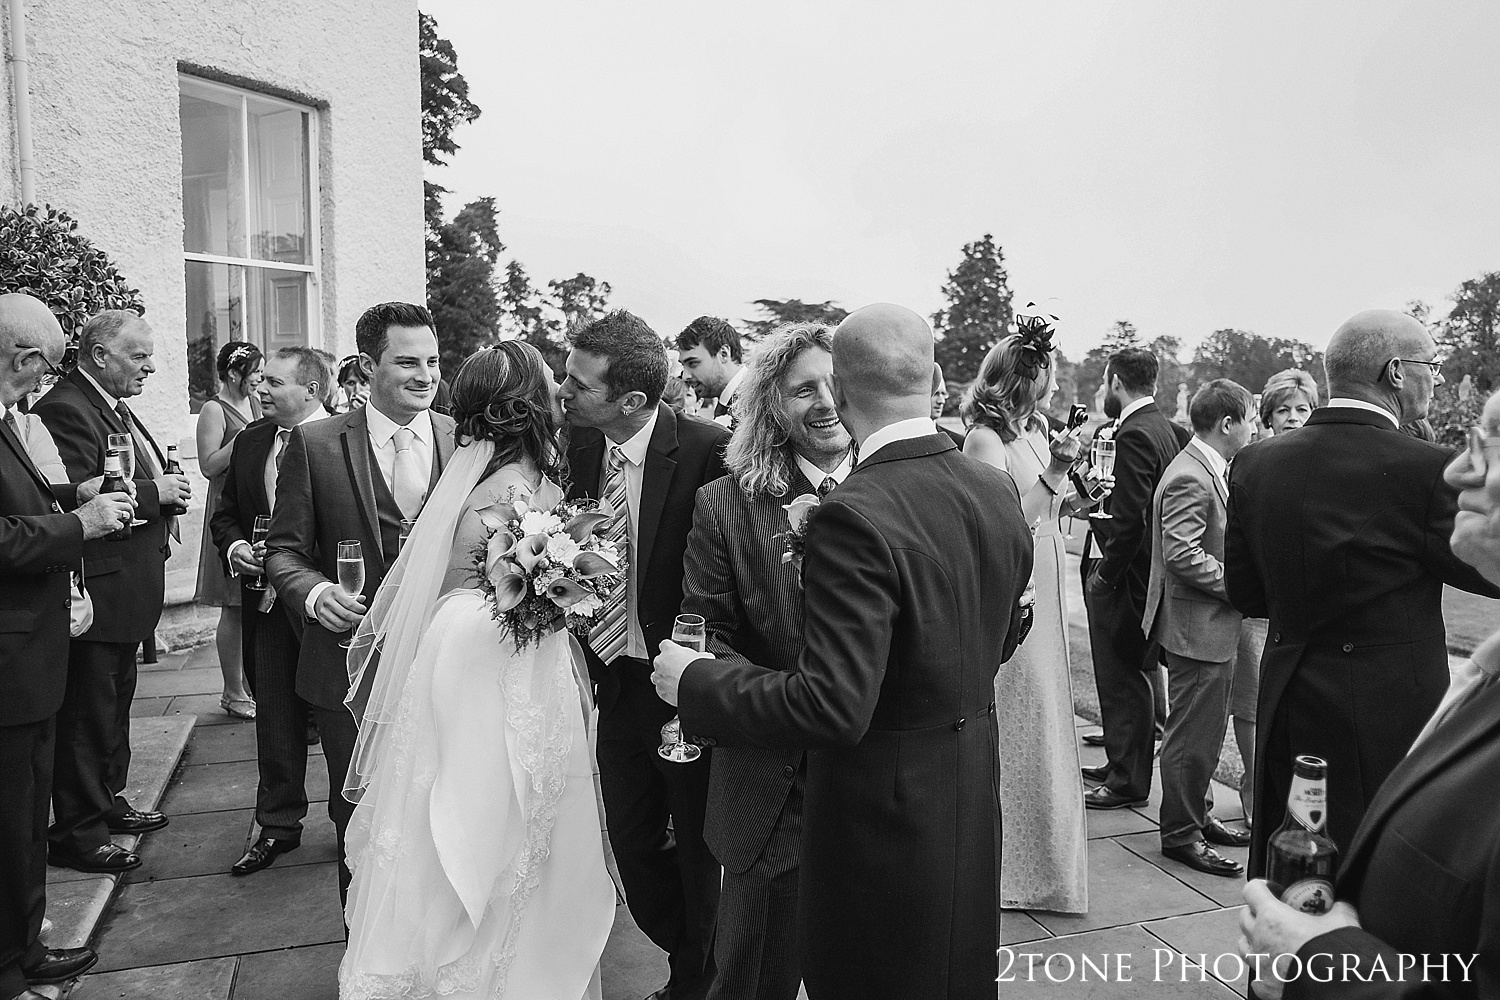 Lartington Hall Wedding photography by www.2tonephotography.co.uk